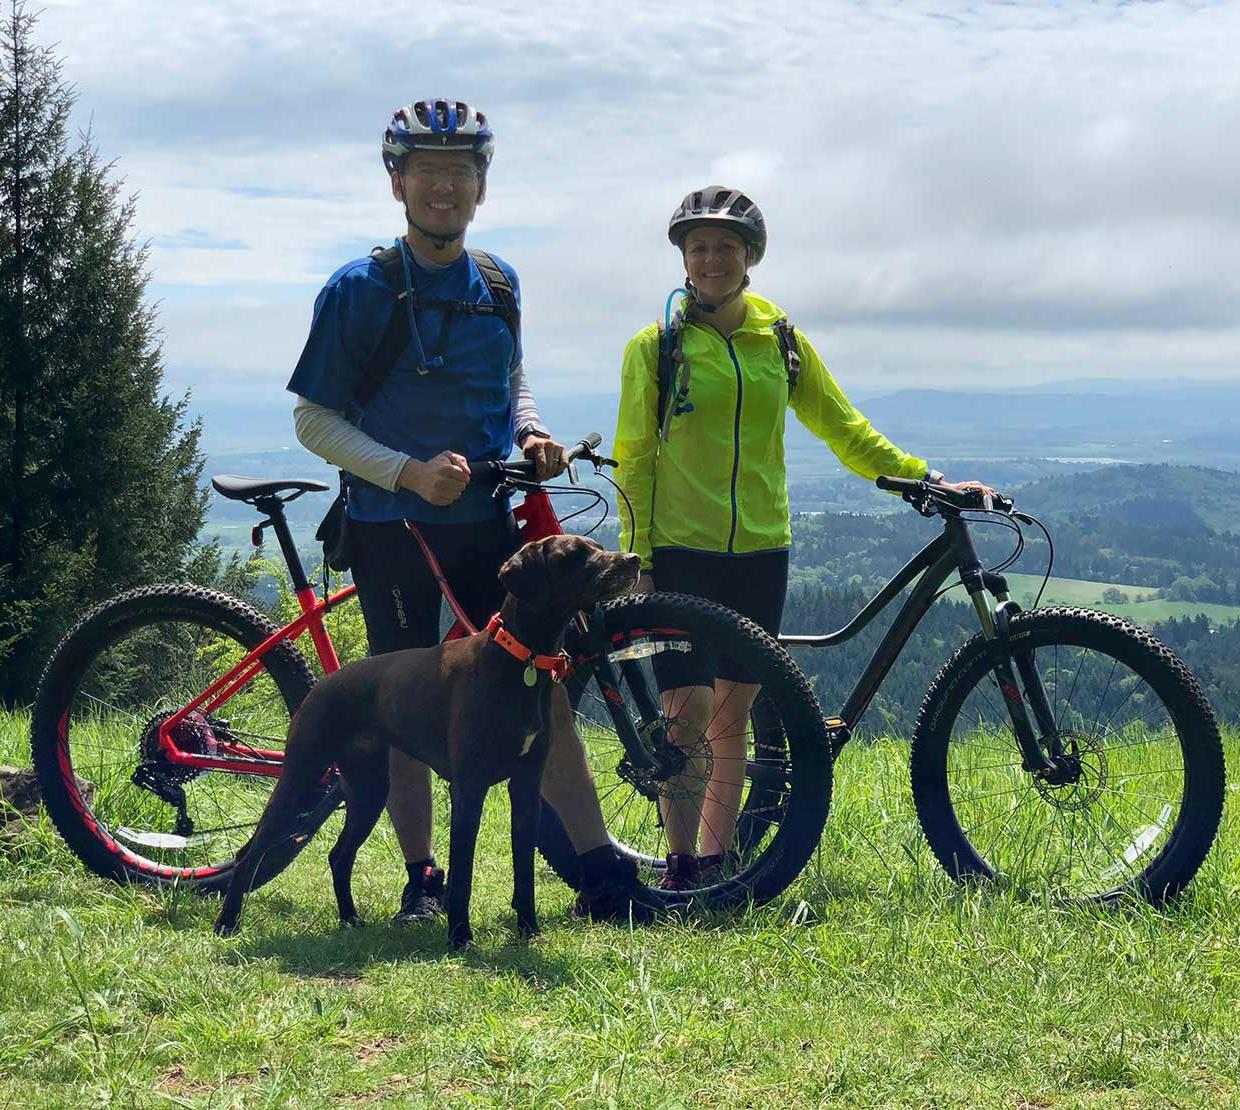 Courtney Rae Armour with husband and dog riding mountain bikes atop grassy hill